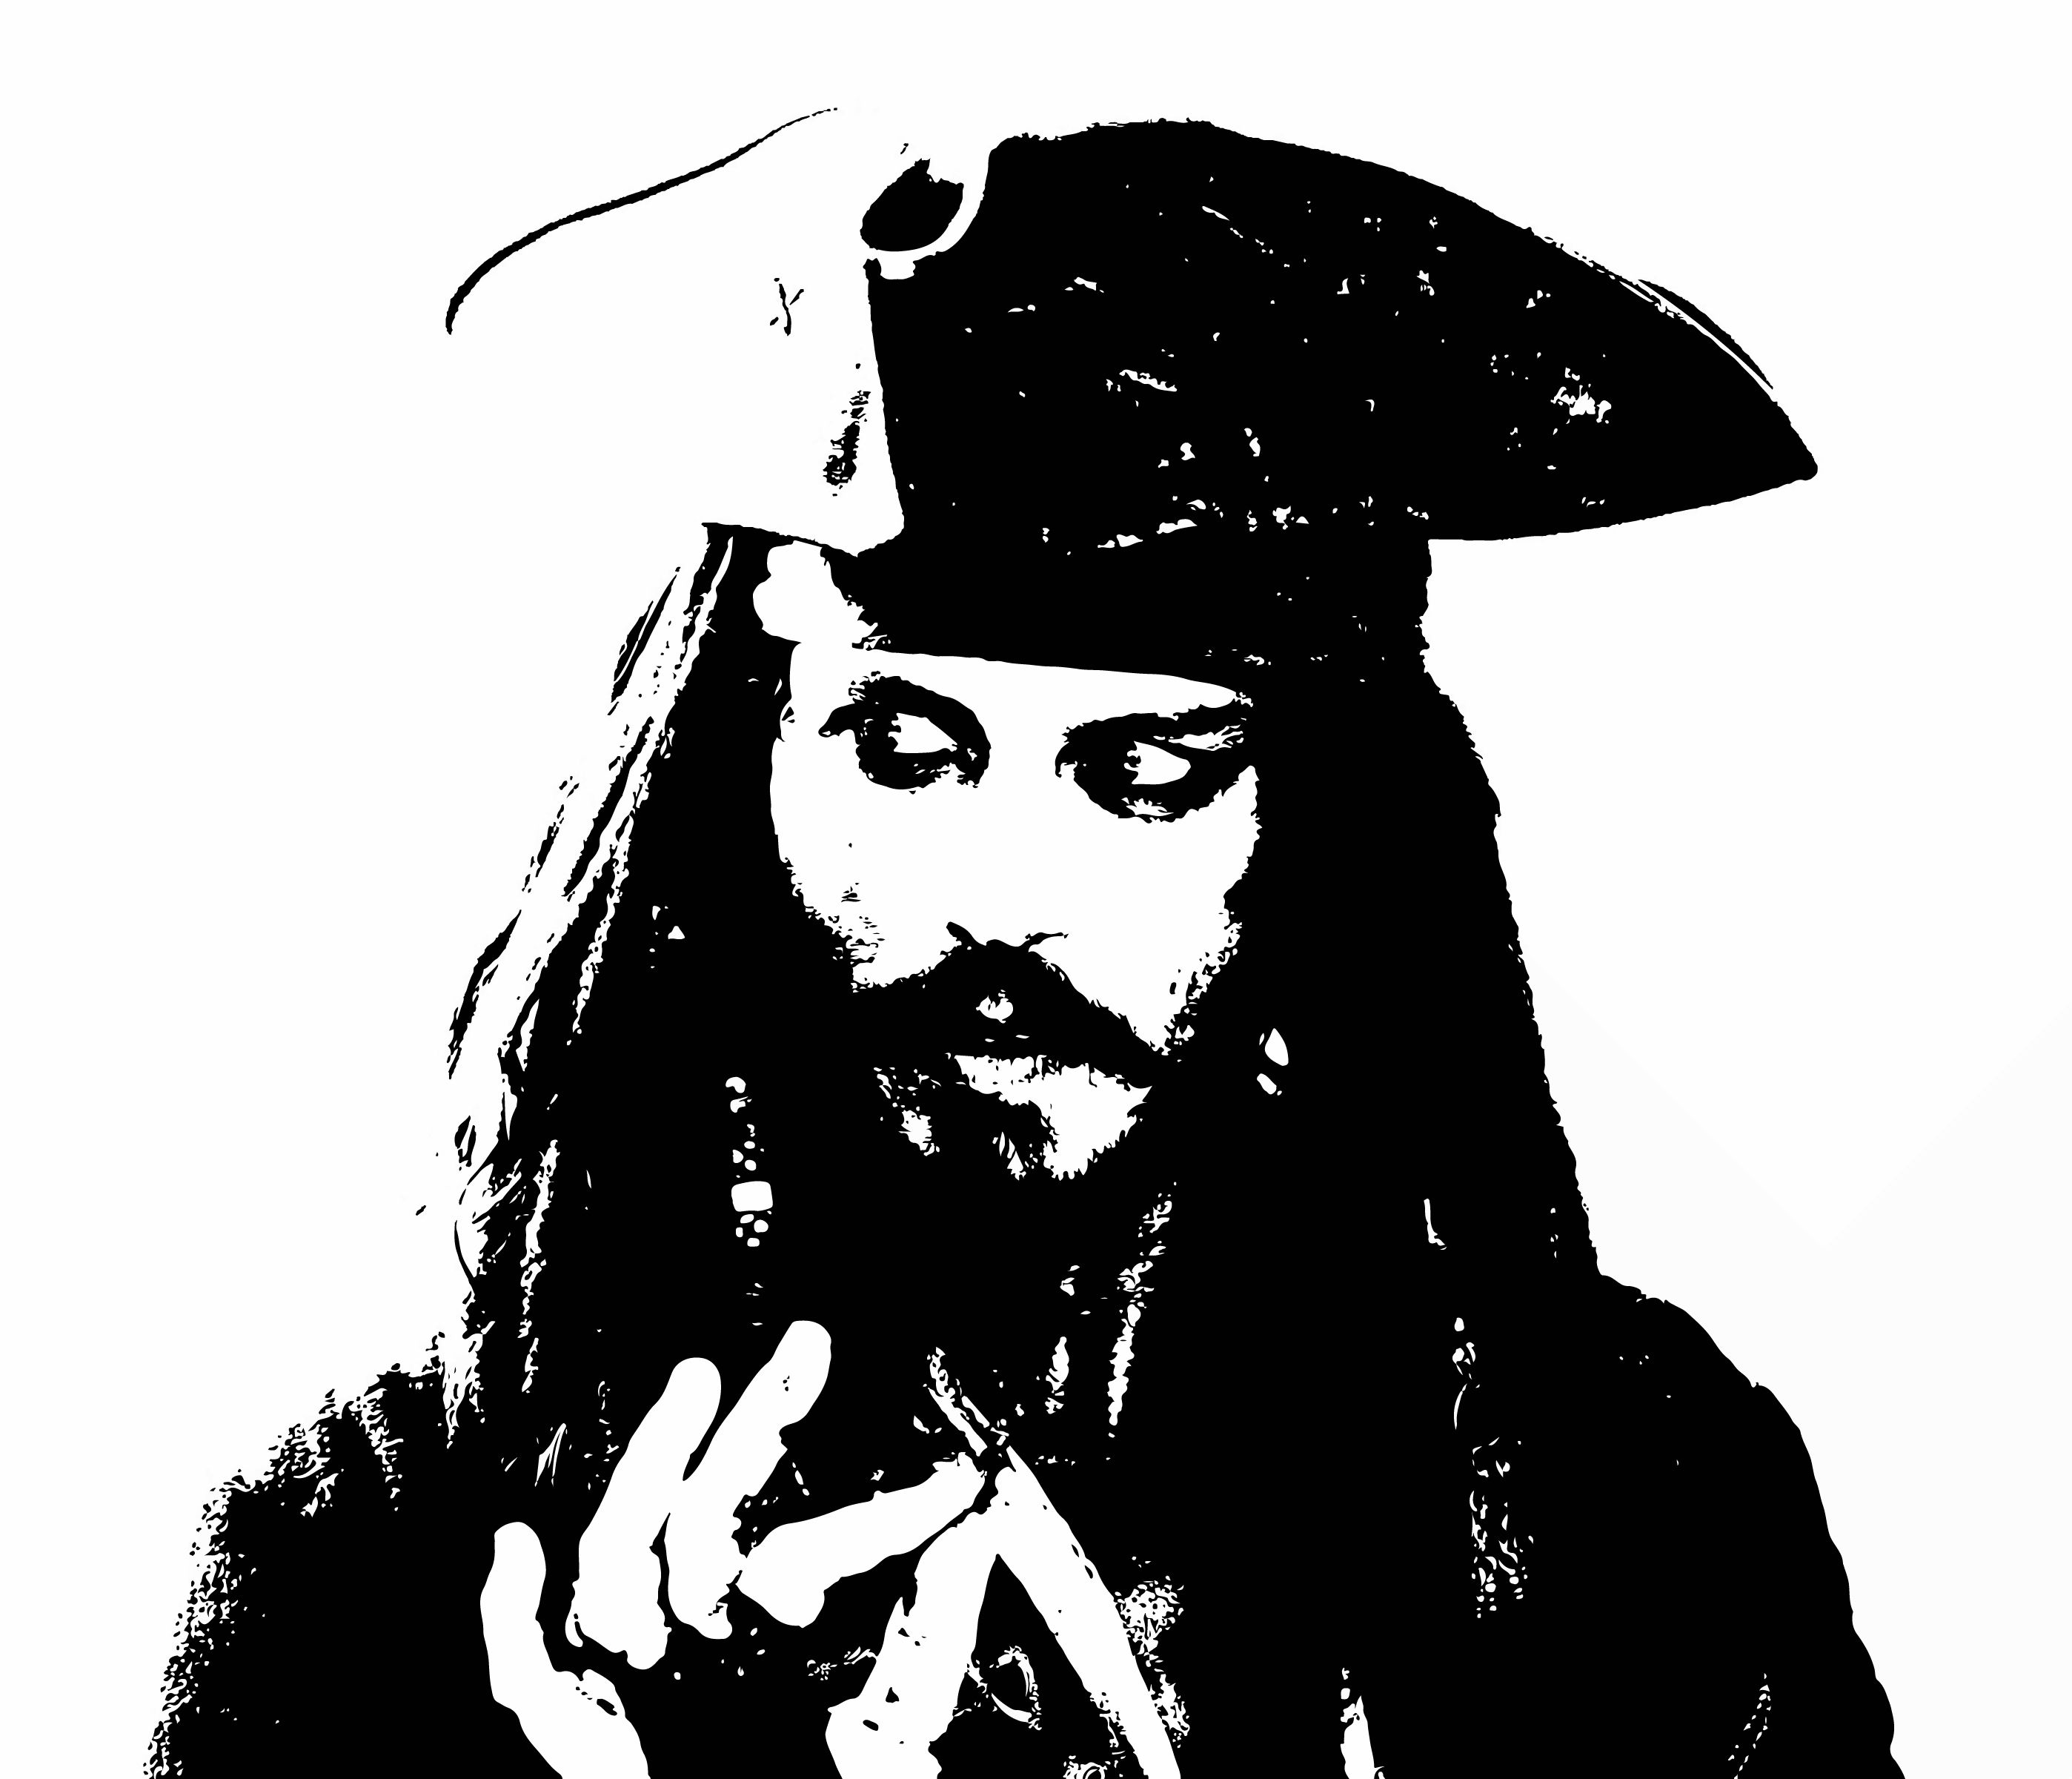 Jack Sparrow. (this would make a cool stencil.).